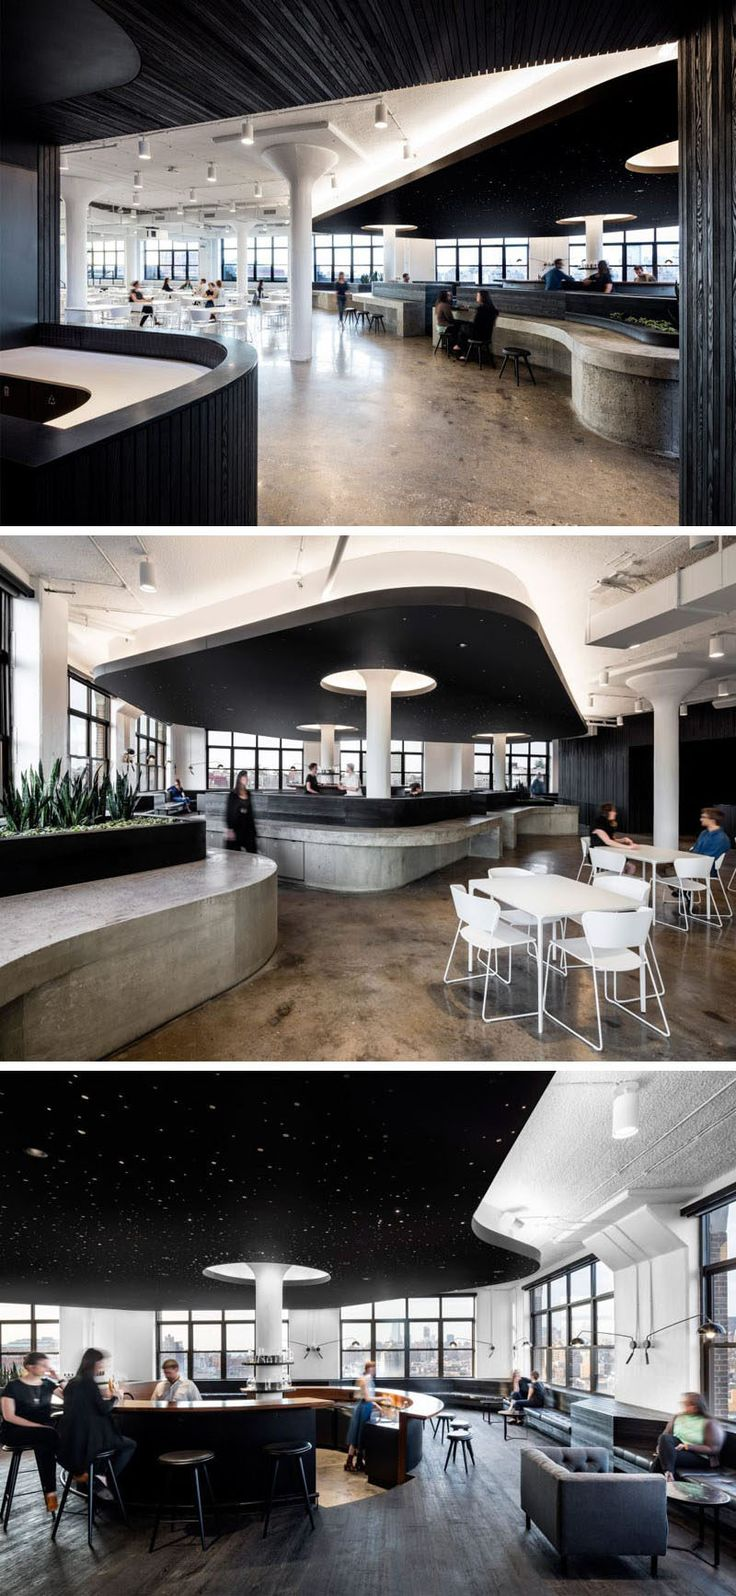 Best 25+ Office ceiling ideas on Pinterest | Office ceiling design ...